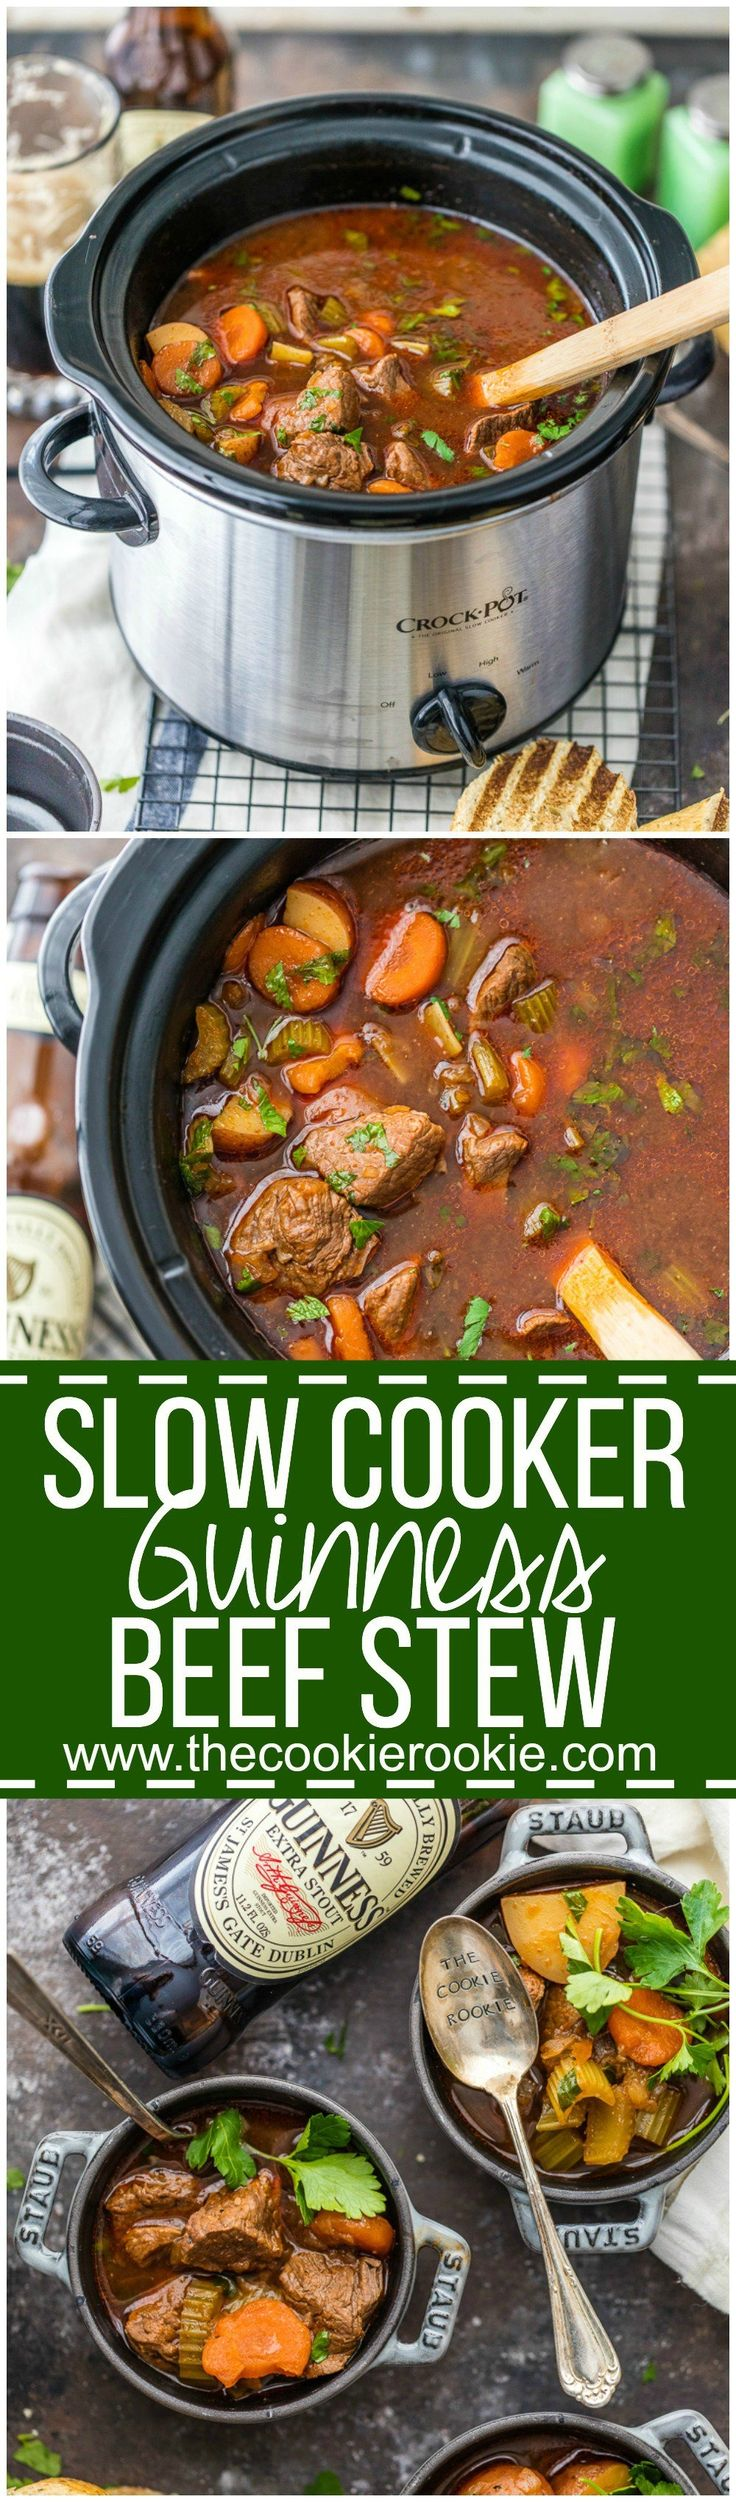 Slow Cooker Guinness Beef Stew is a favorite Irish recipe! We make this crockpot beef soup for St. Patrick's Day and can't get enough! The perfect slow cooker comfort food recipe for st patricks day!